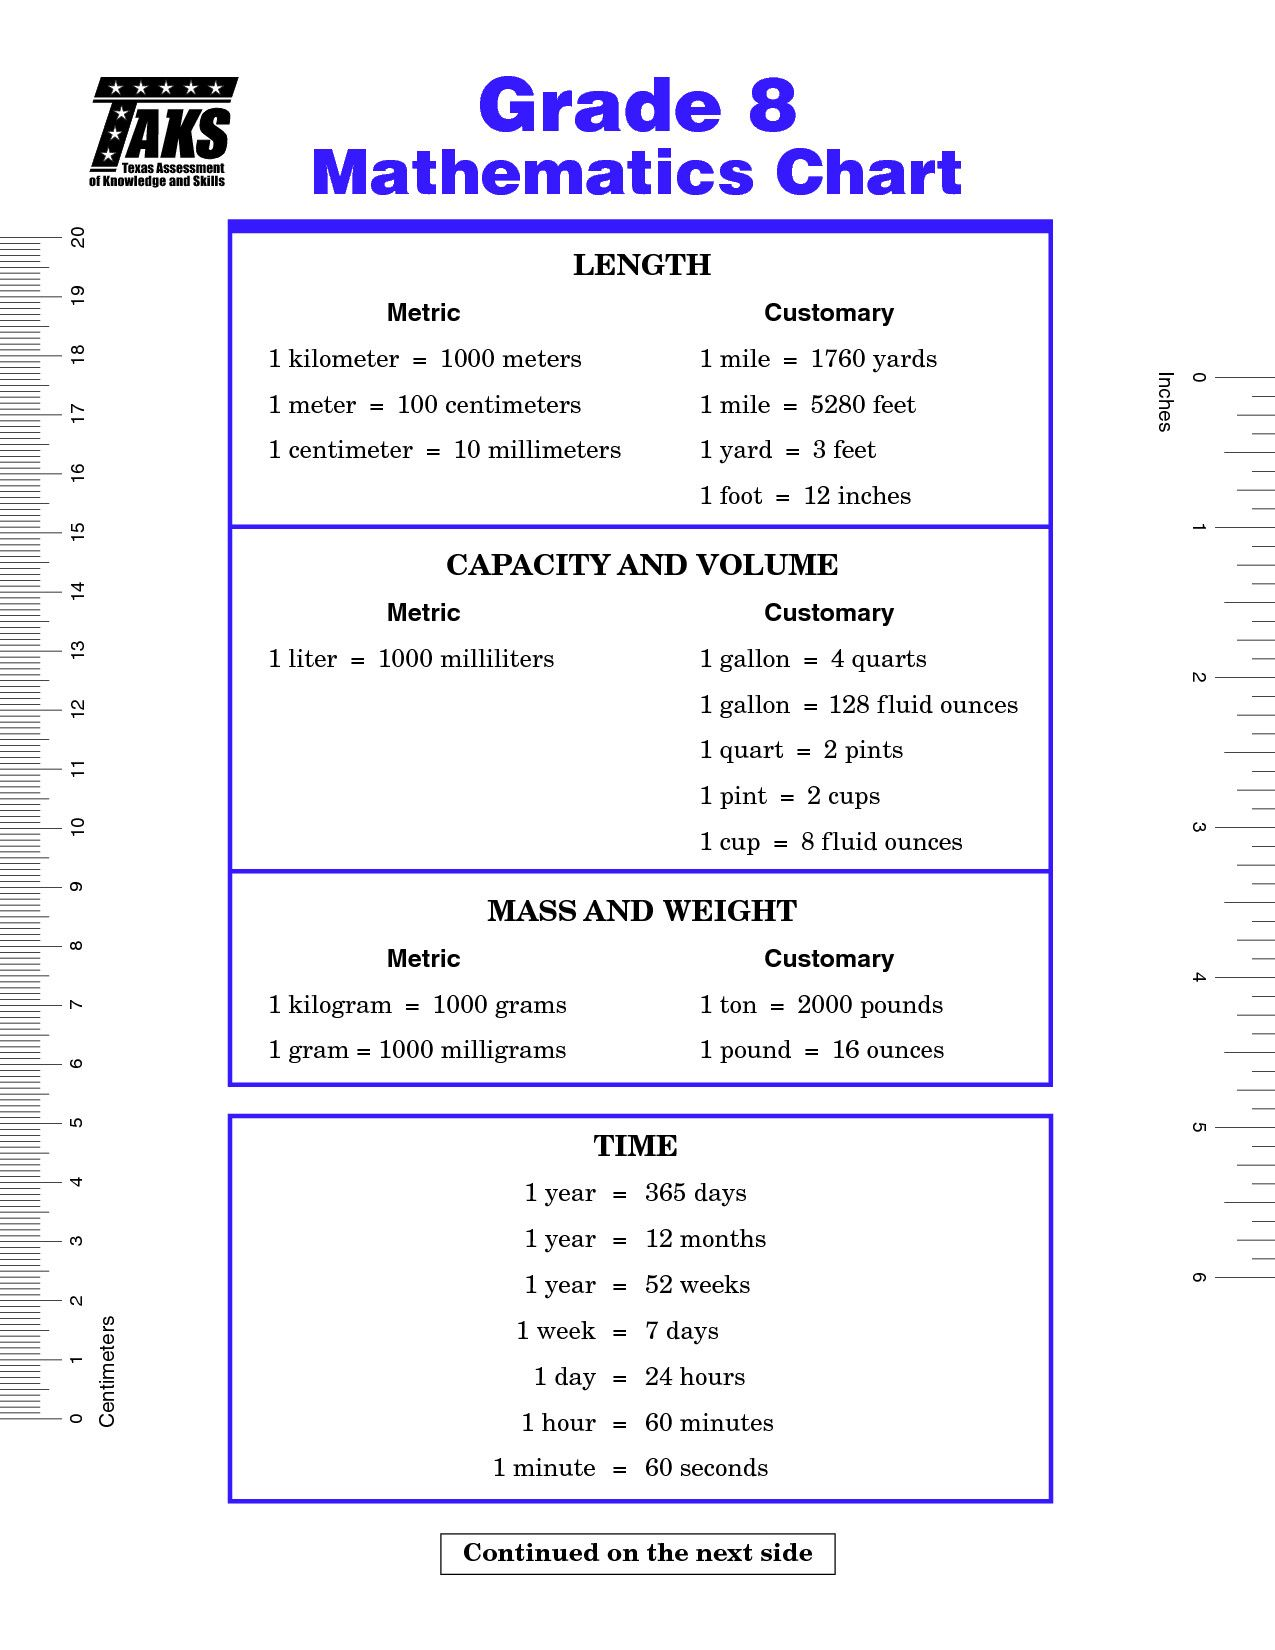 hight resolution of 5 Free Math Worksheets Second Grade 2 Measurement Metric Units Mass Kg Gm 8  8th g…   2nd grade math worksheets